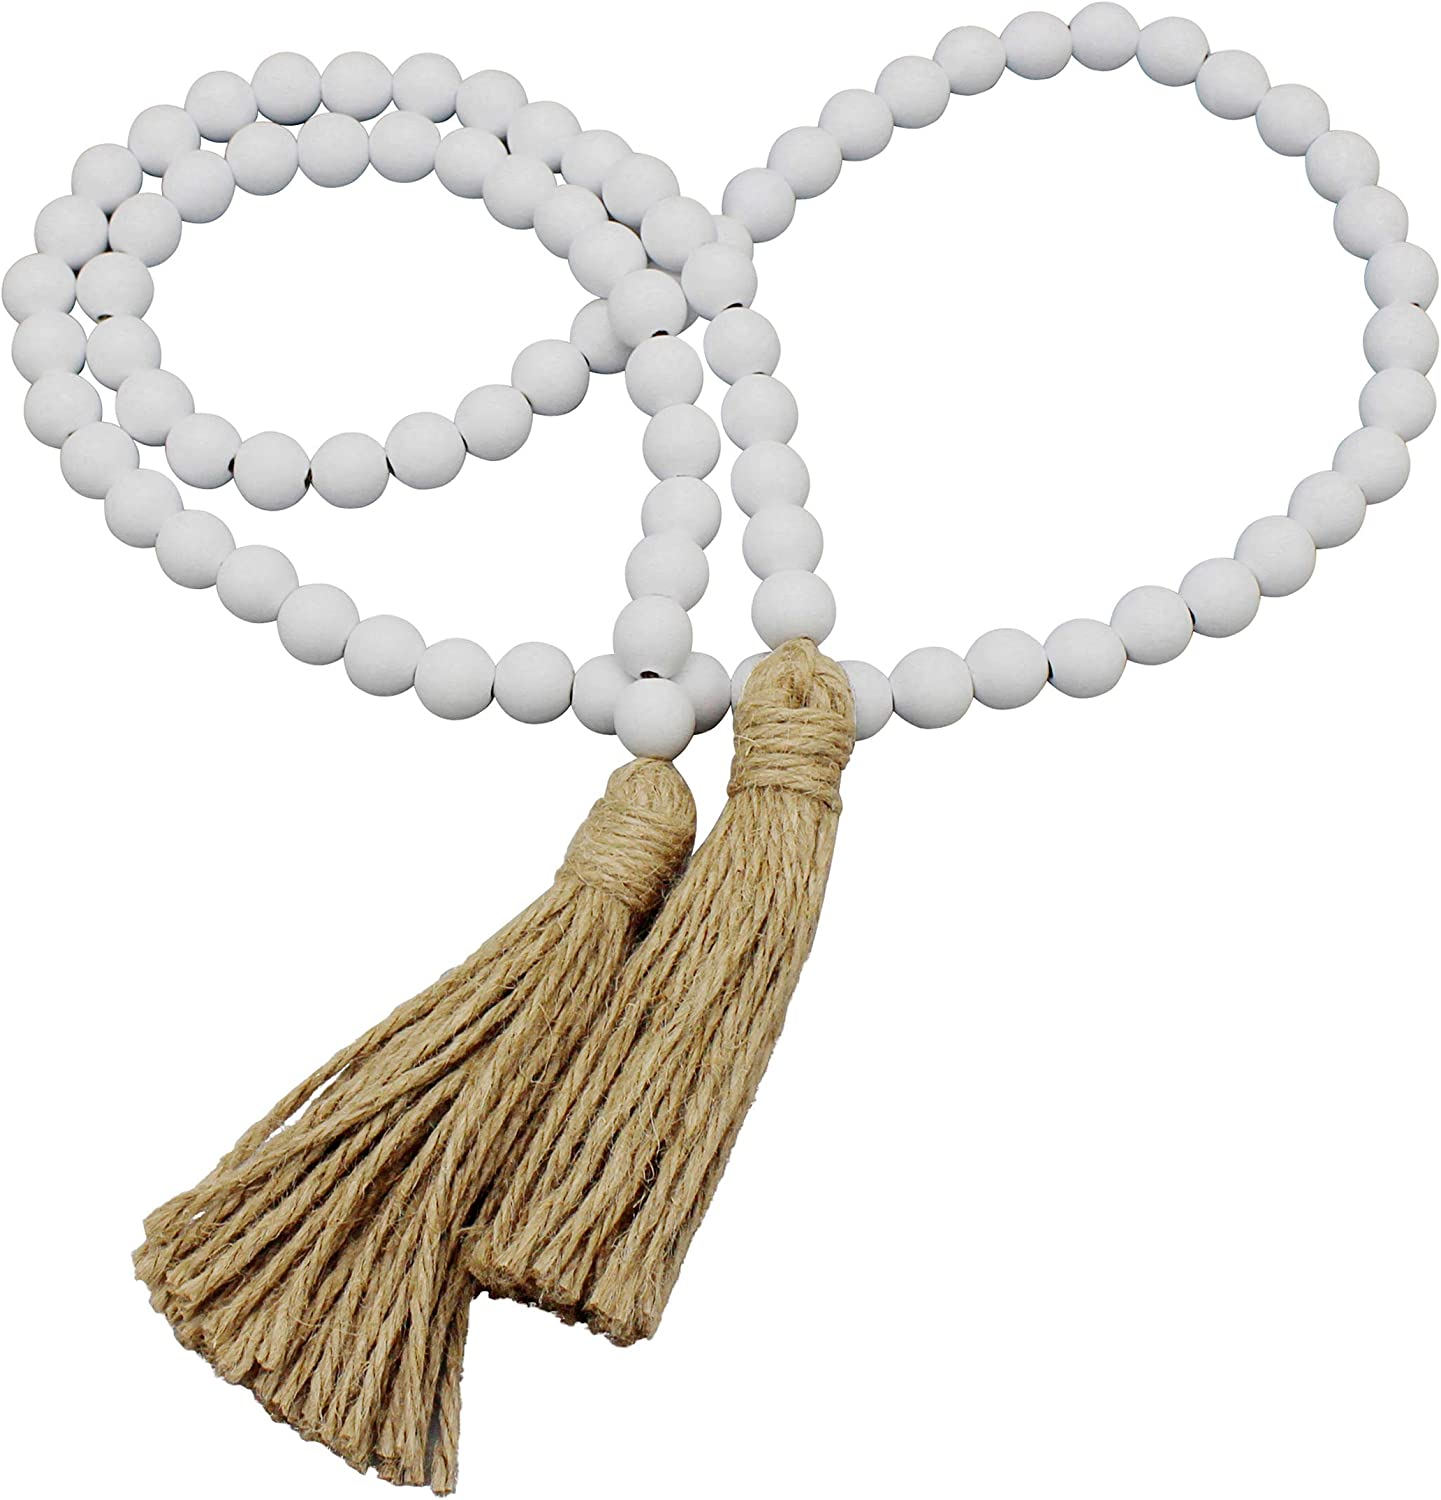 CVHOMEDECO. Wood Beads Garland with Tassels Farmhouse Rustic Wooden Prayer Bead String Wall Hanging Accent for Home Festival Decor. White